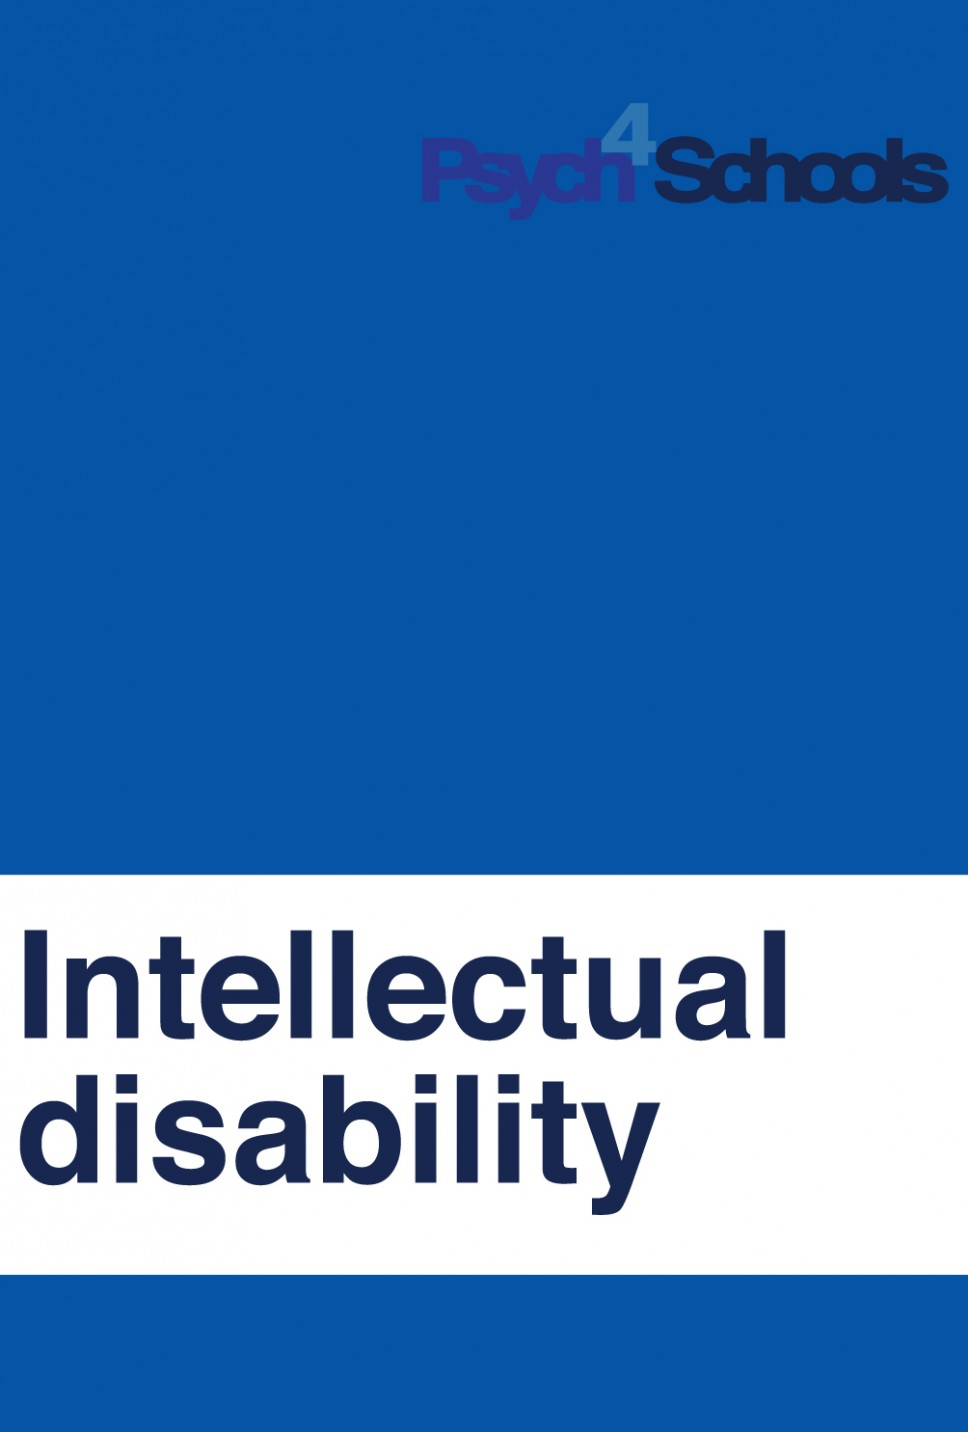 INTELLECTUAL-DISABILITY